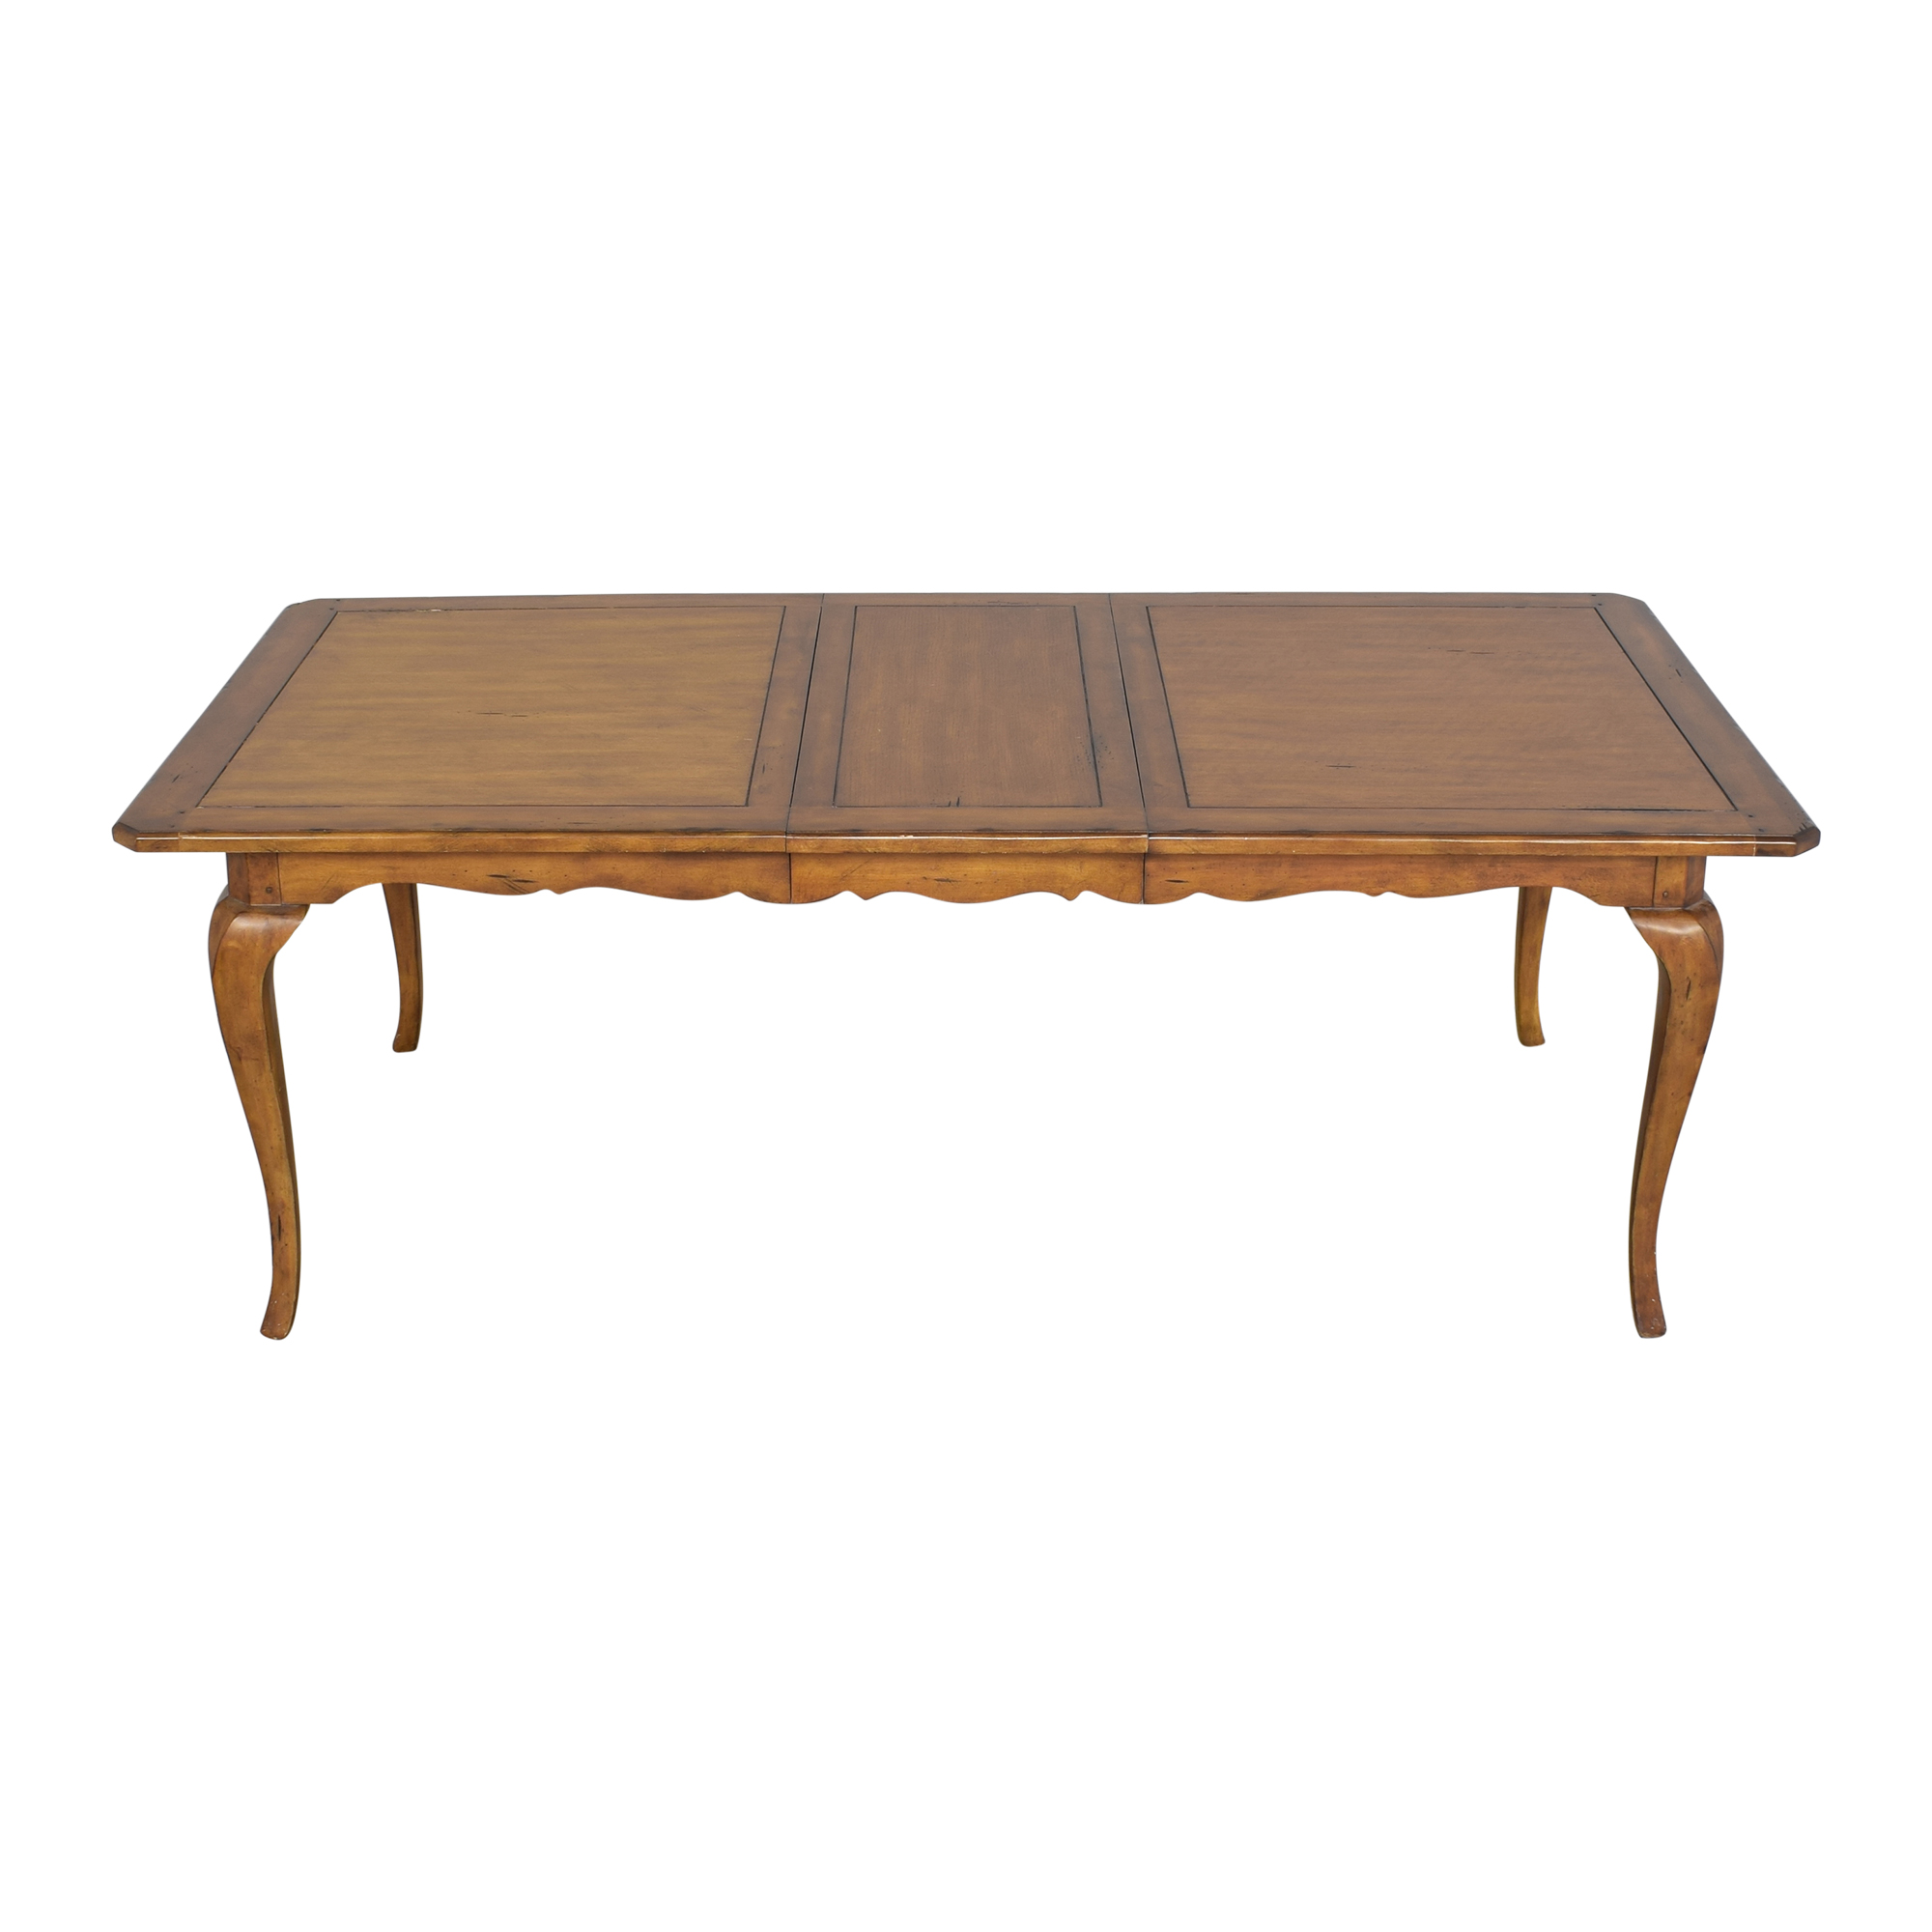 Lillian August Lillian August Extendable Dining Table discount